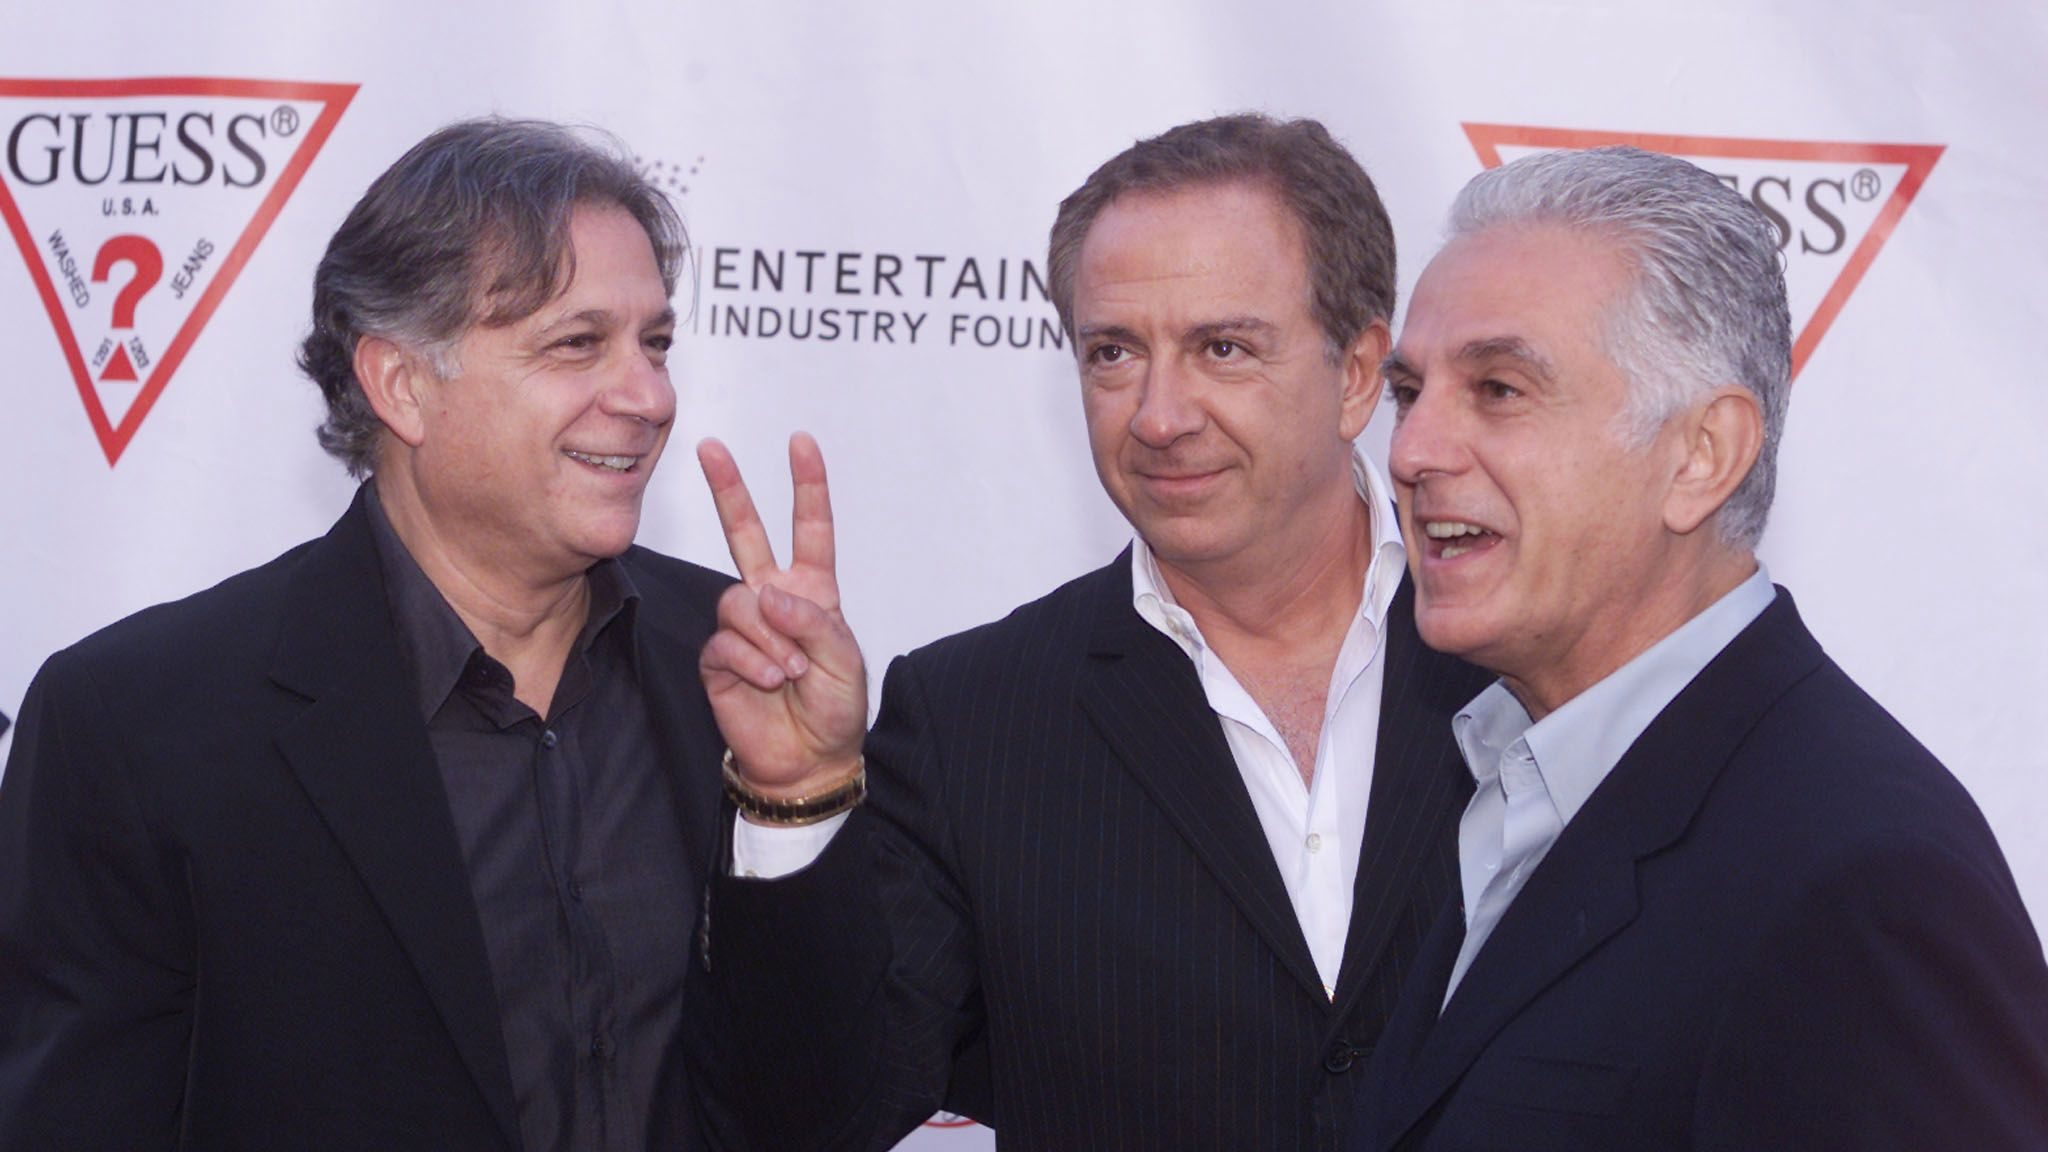 Armand (L) Paul (C) and Maurice Marciano, founders of the GUESS? clothing line pose as they arrive at their company's 20th anniversary party in Los Angeles May 9, 2002. The brothers, originally from France, started the company in Los Angeles twenty years ago and sold their first order of 24 pairs of jeans to Bloomingdales. REUTERS/Fred Prouser REUTERS  FSP - RP3DRHZBCIAA